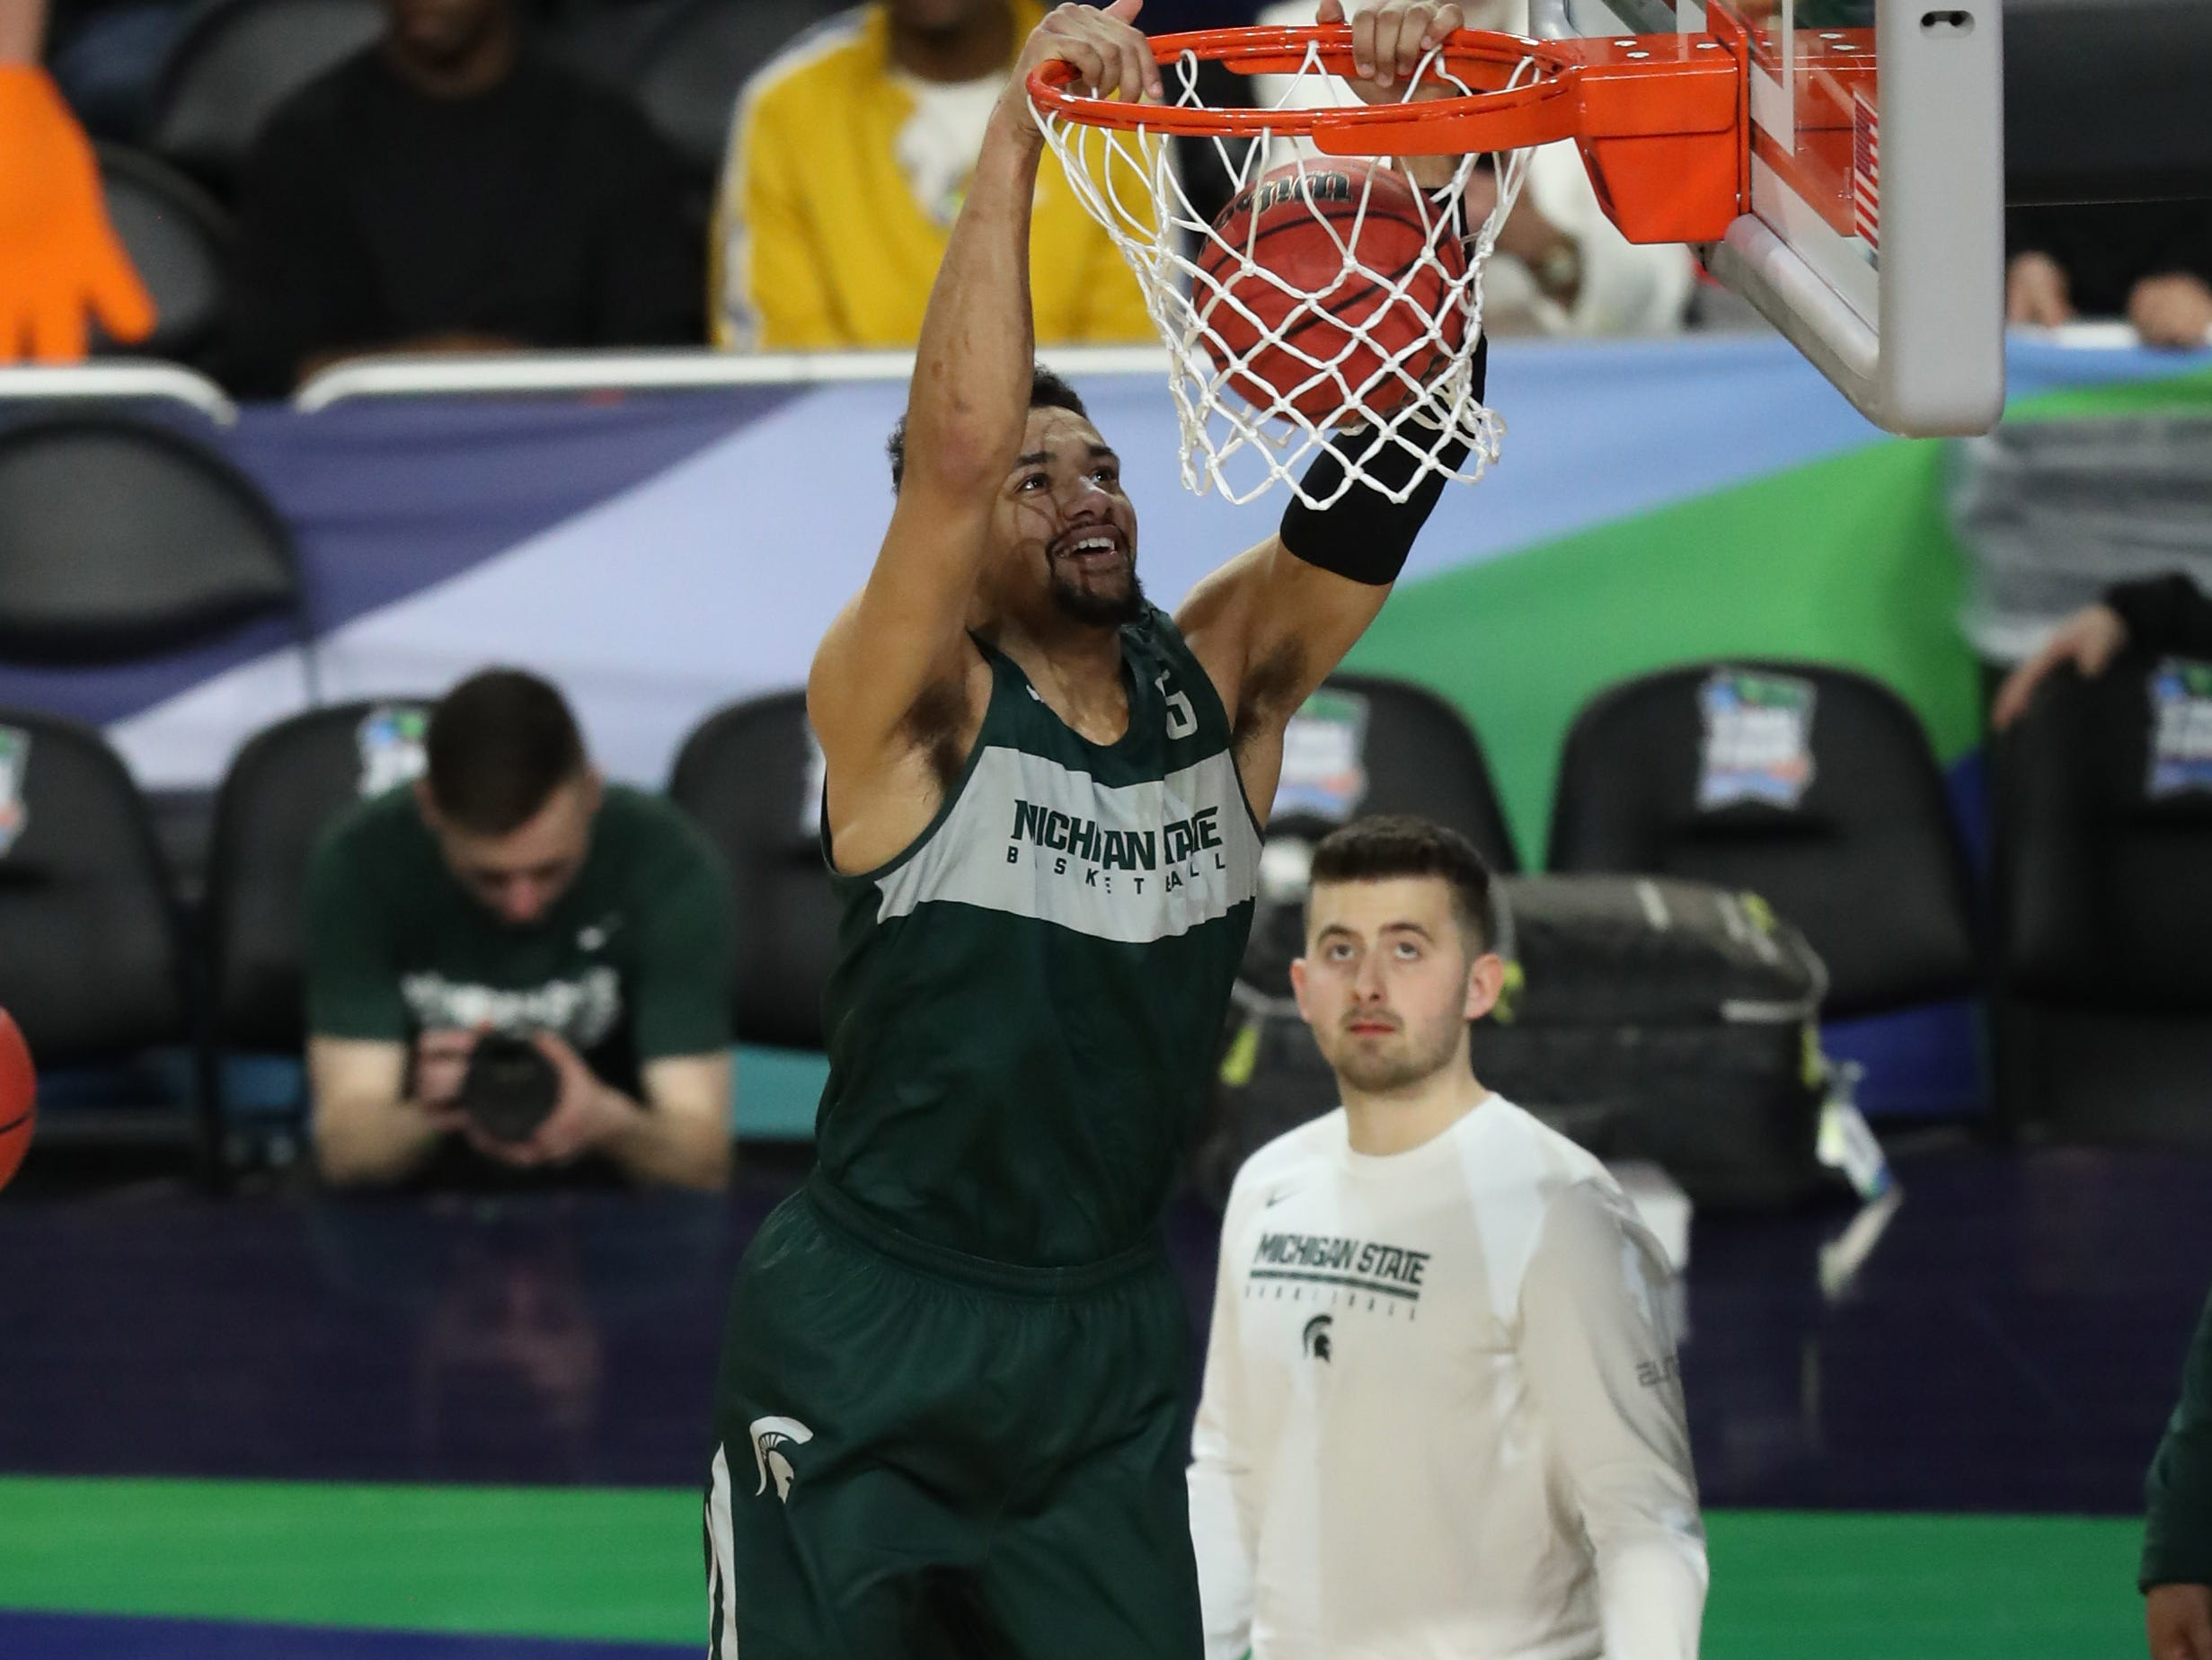 Apr 5, 2019; Minneapolis, MN, USA; Michigan State Spartans guard Cassius Winston (5) dunks the ball during practice for the 2019 men's Final Four at US Bank Stadium. Mandatory Credit: Brace Hemmelgarn-USA TODAY Sports